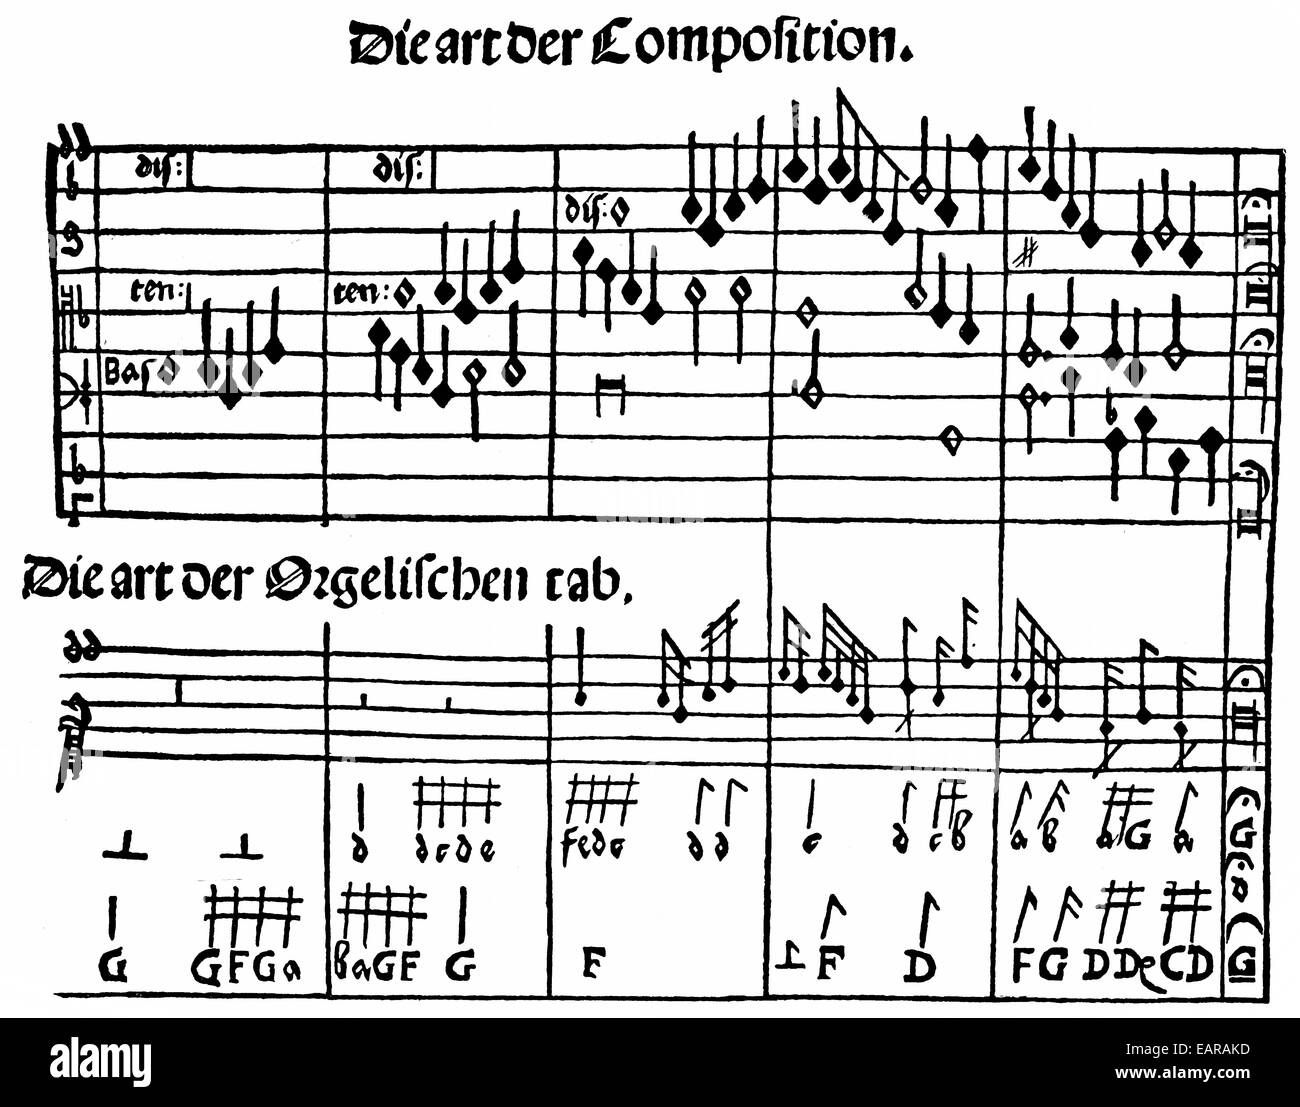 Page Music 16th Century Stock Photos & Page Music 16th Century Stock ...